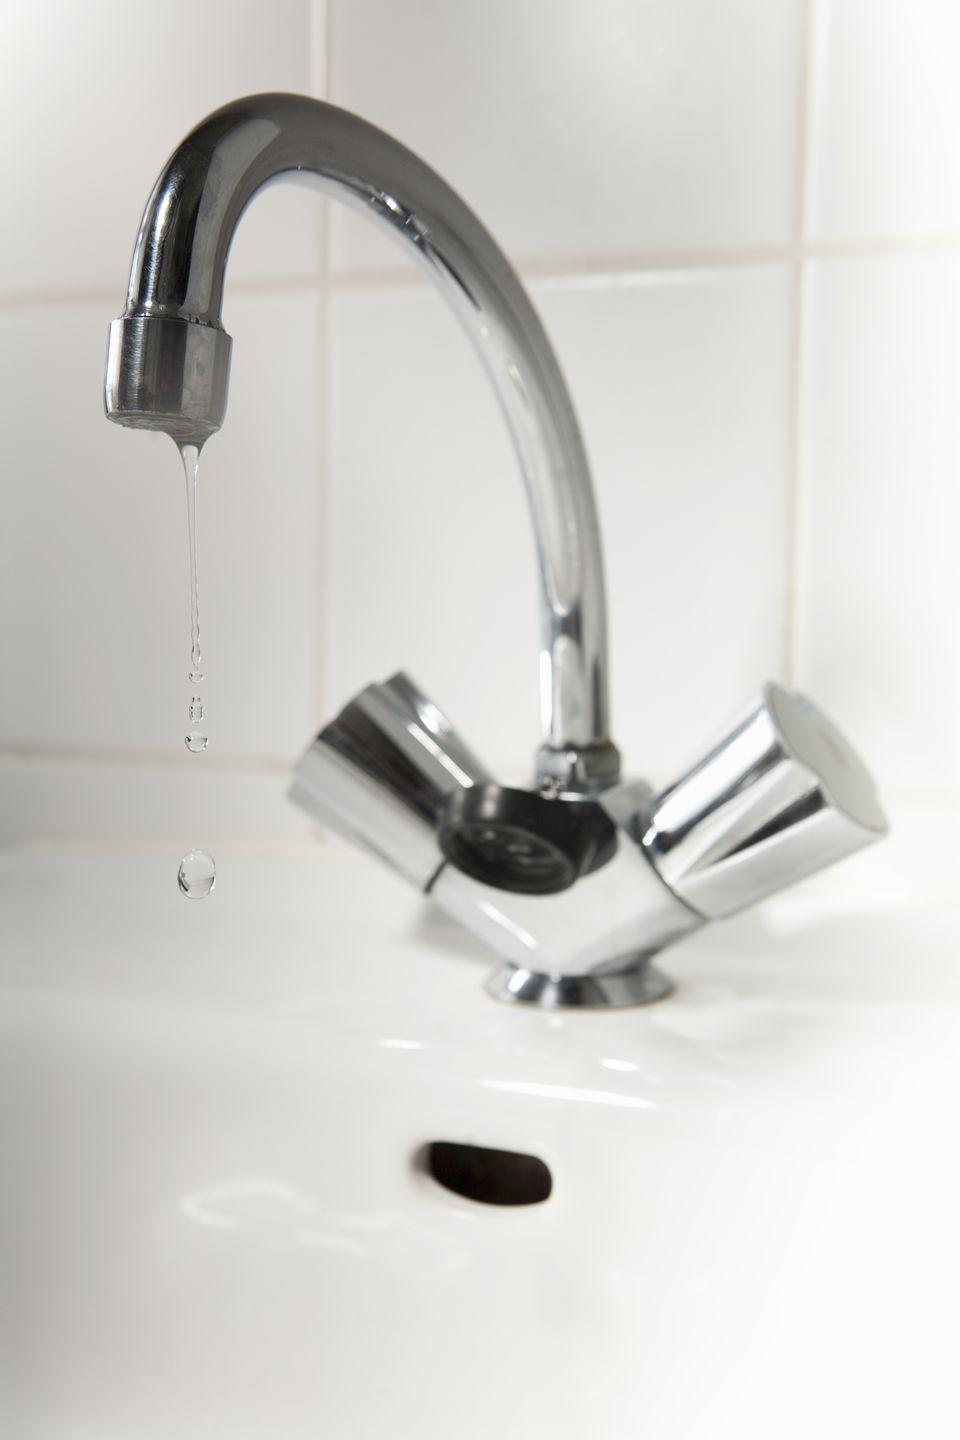 <p>Those tiny drops of water add up big time when it comes to your water bill. Tighten up a drippy faucet to cut down on the water you didn't even realize you were consuming.</p>